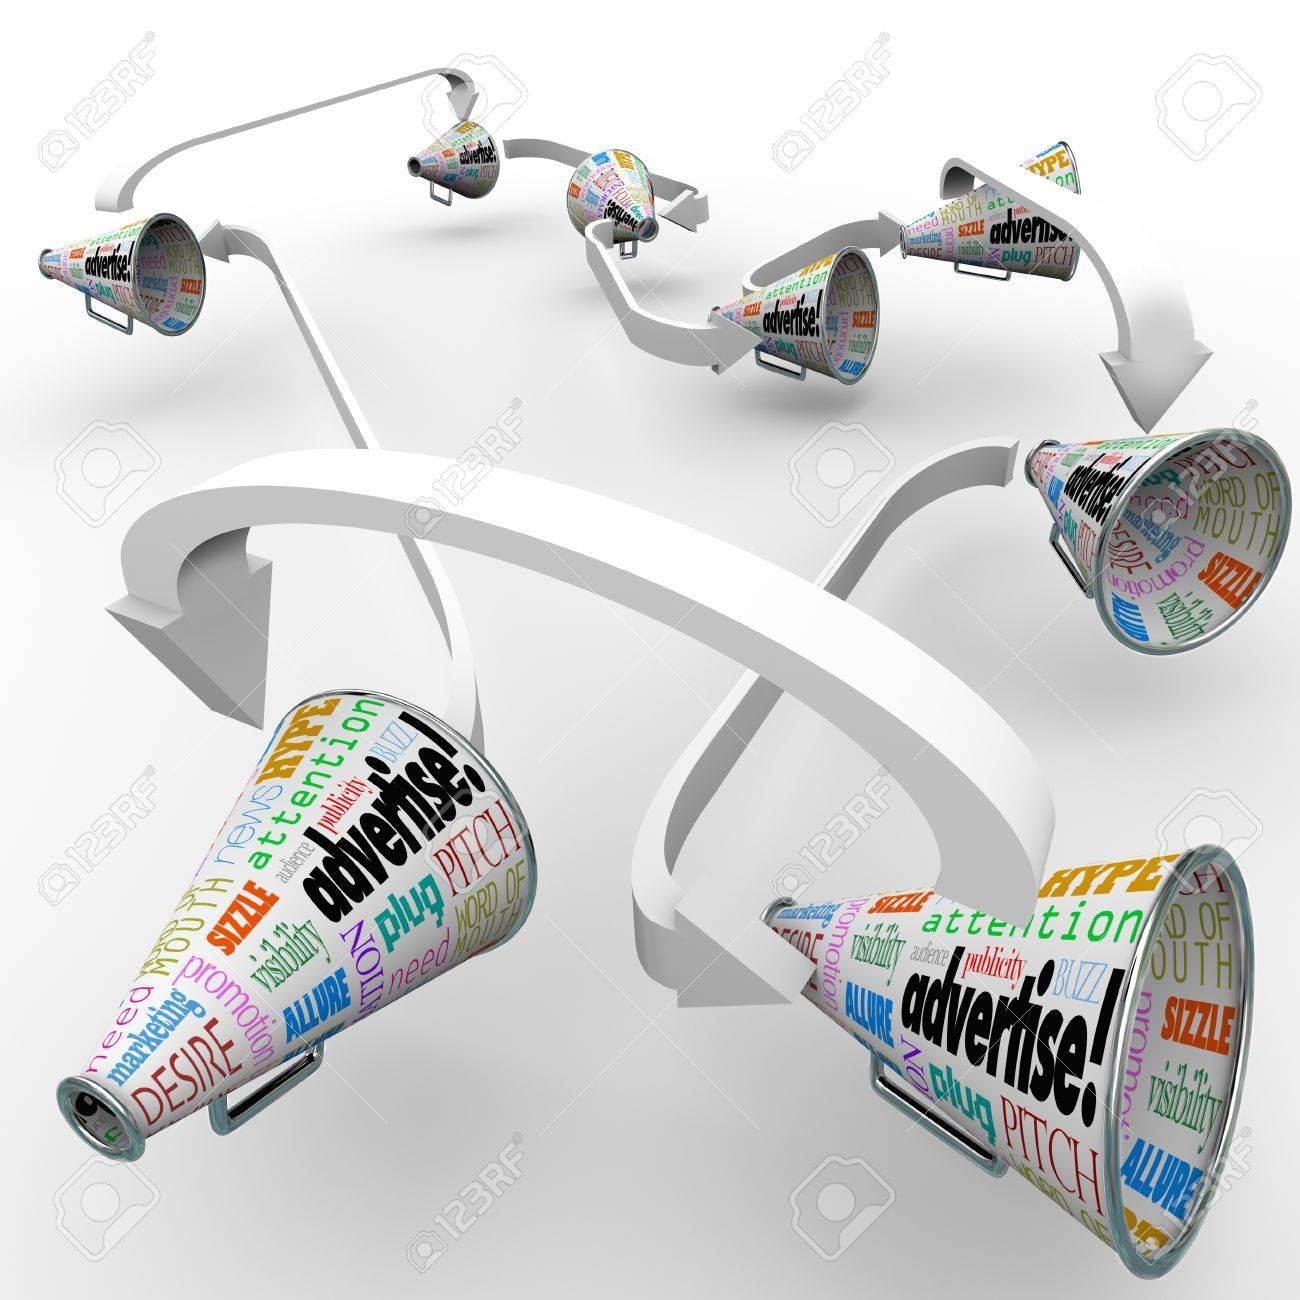 Many bullhorns or megaphones with the word Advertise and other terms such as attention, pitch, publicity, and marketing to get the message out on your business or product Stock Photo - 19912321